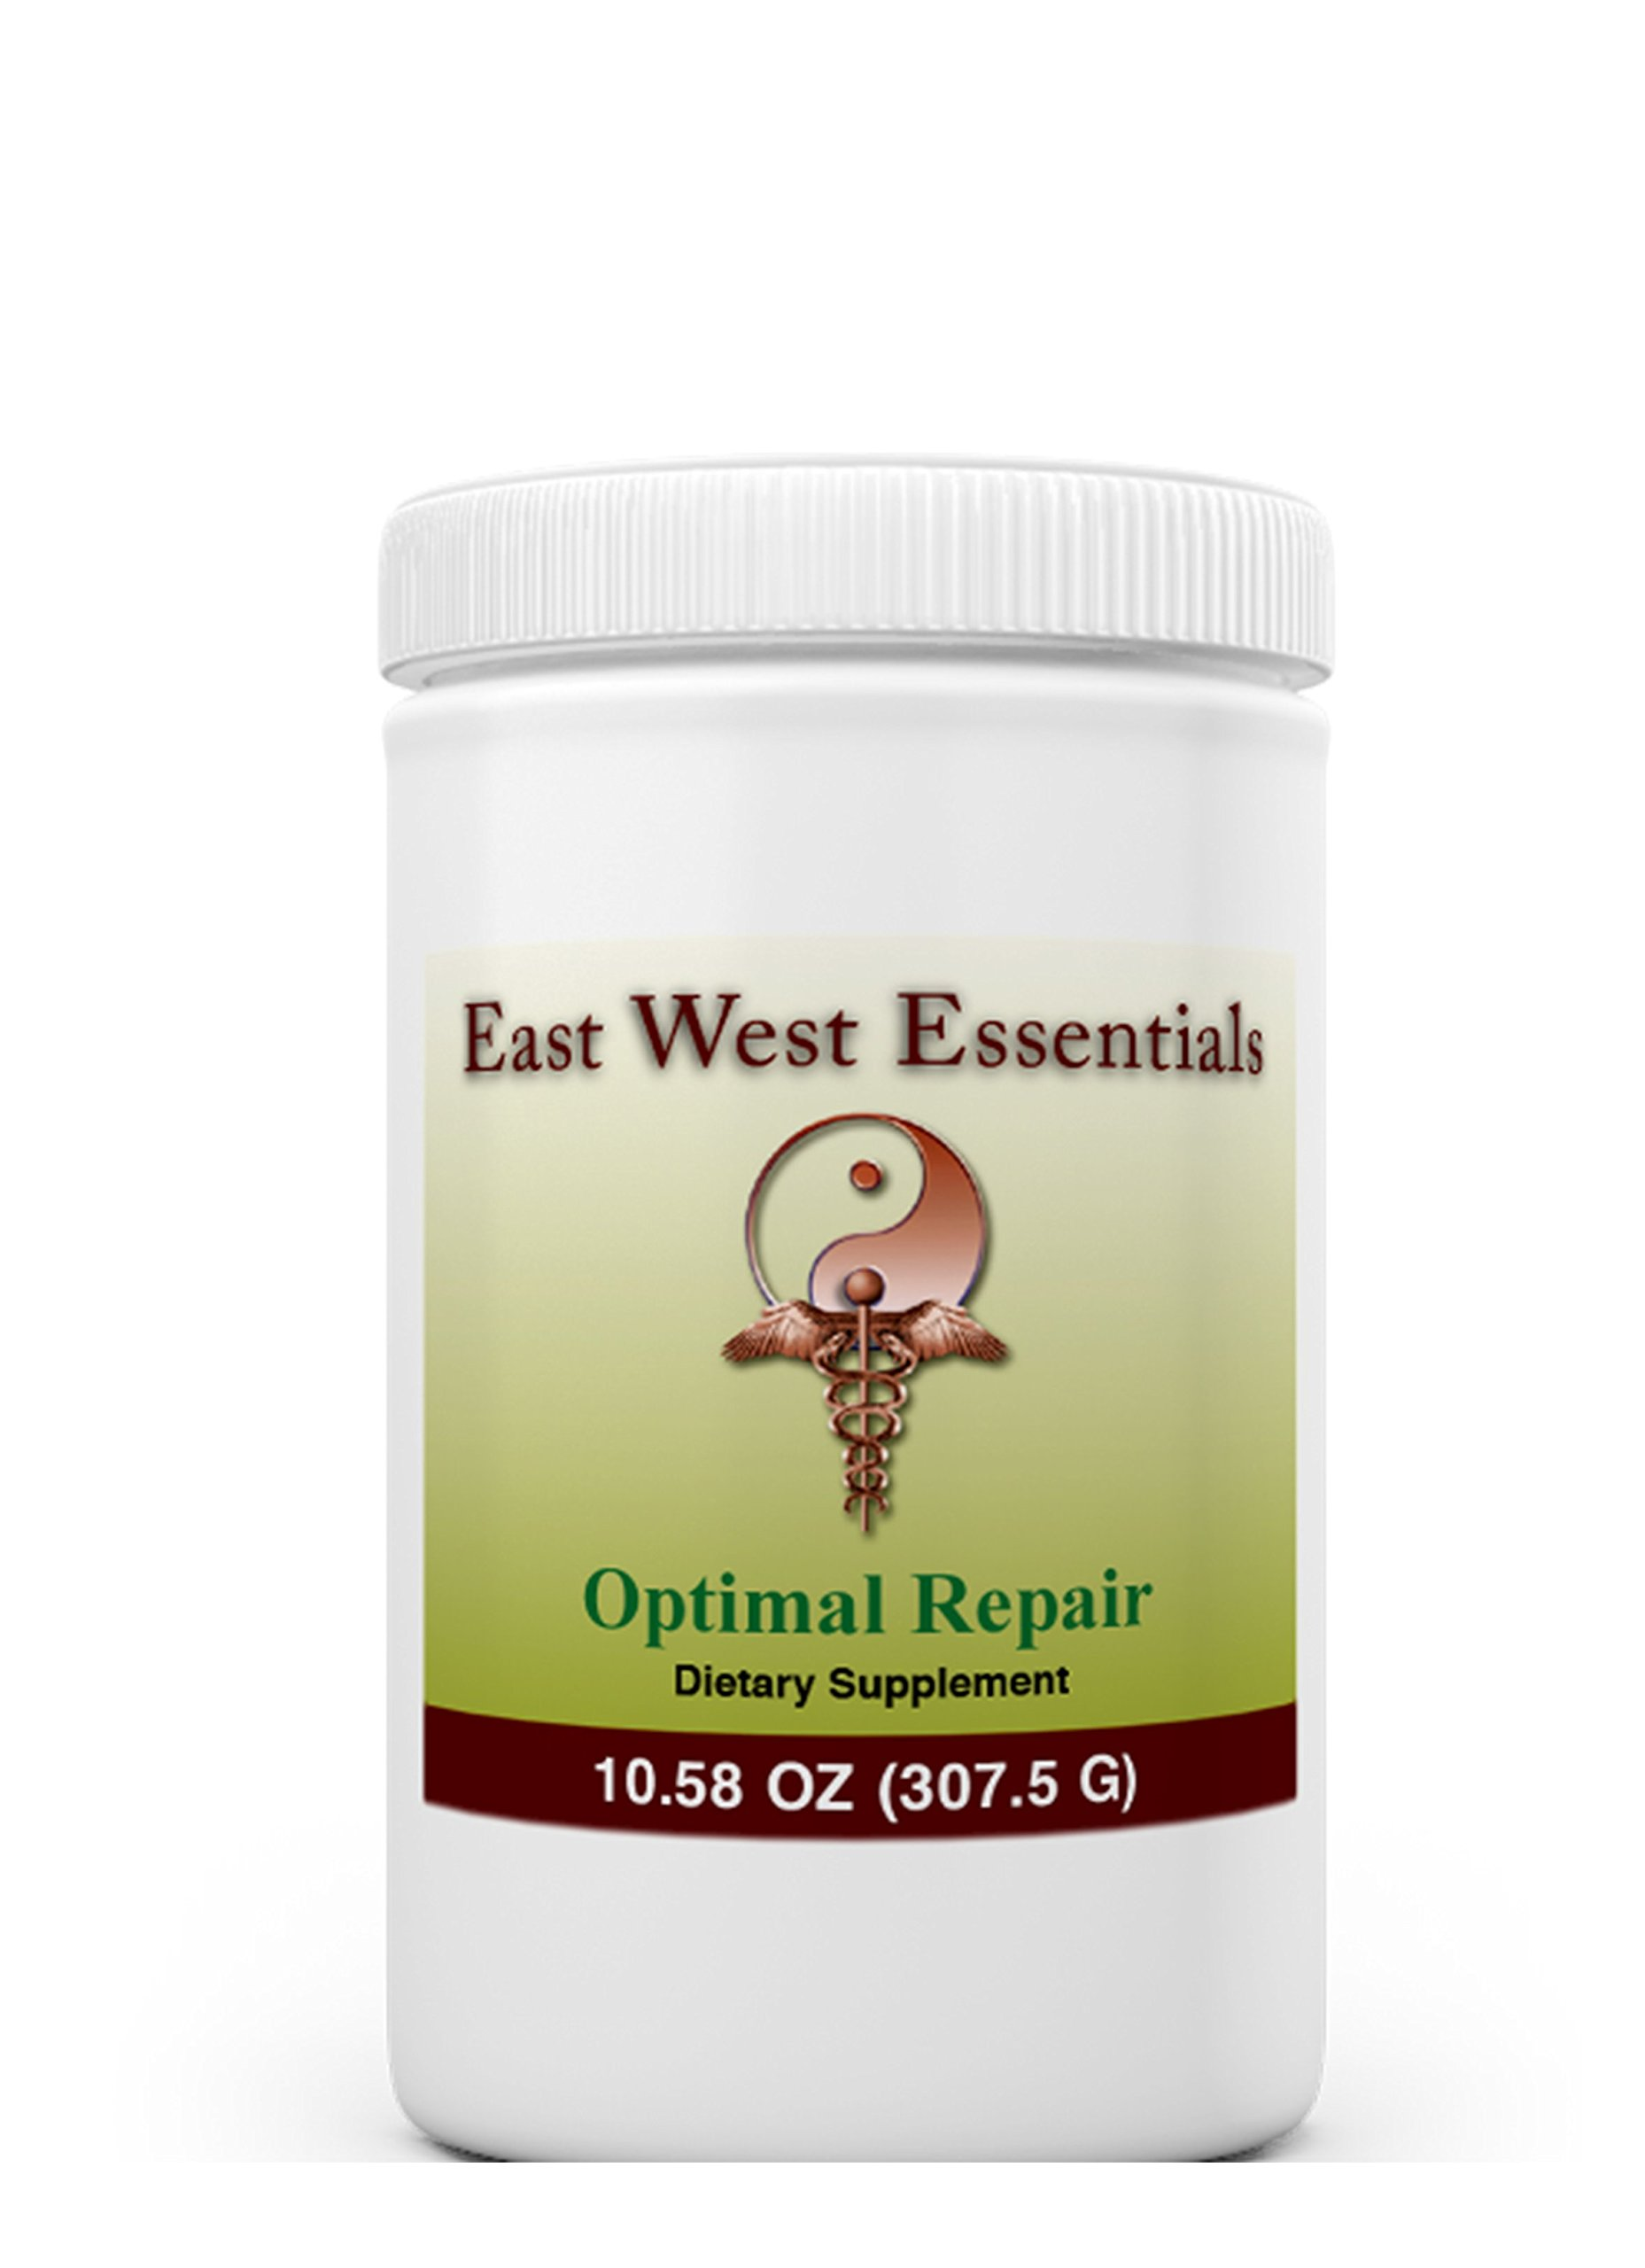 Optimal Repair Blend - Dietary Supplement by East West Essentials - Recover Faster From Adrenal Fatigue - Antioxidant Rich - Features OxyPhyte by East West Essentials